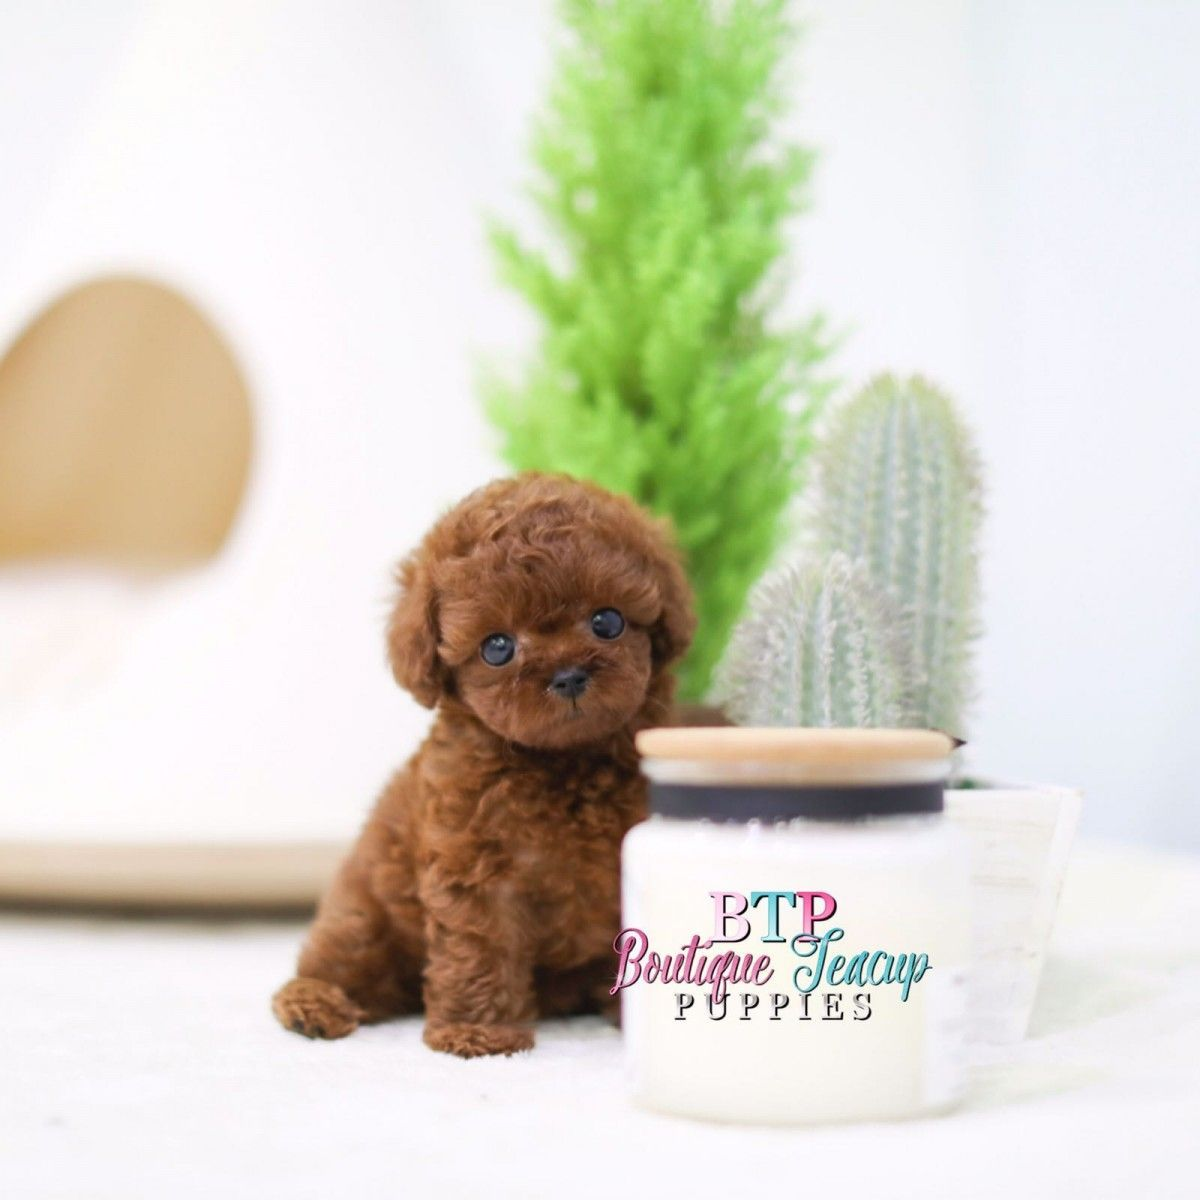 Poodle Puppies For Sale In 2020 Poodle Puppies For Sale Teacup Puppies Poodle Puppy